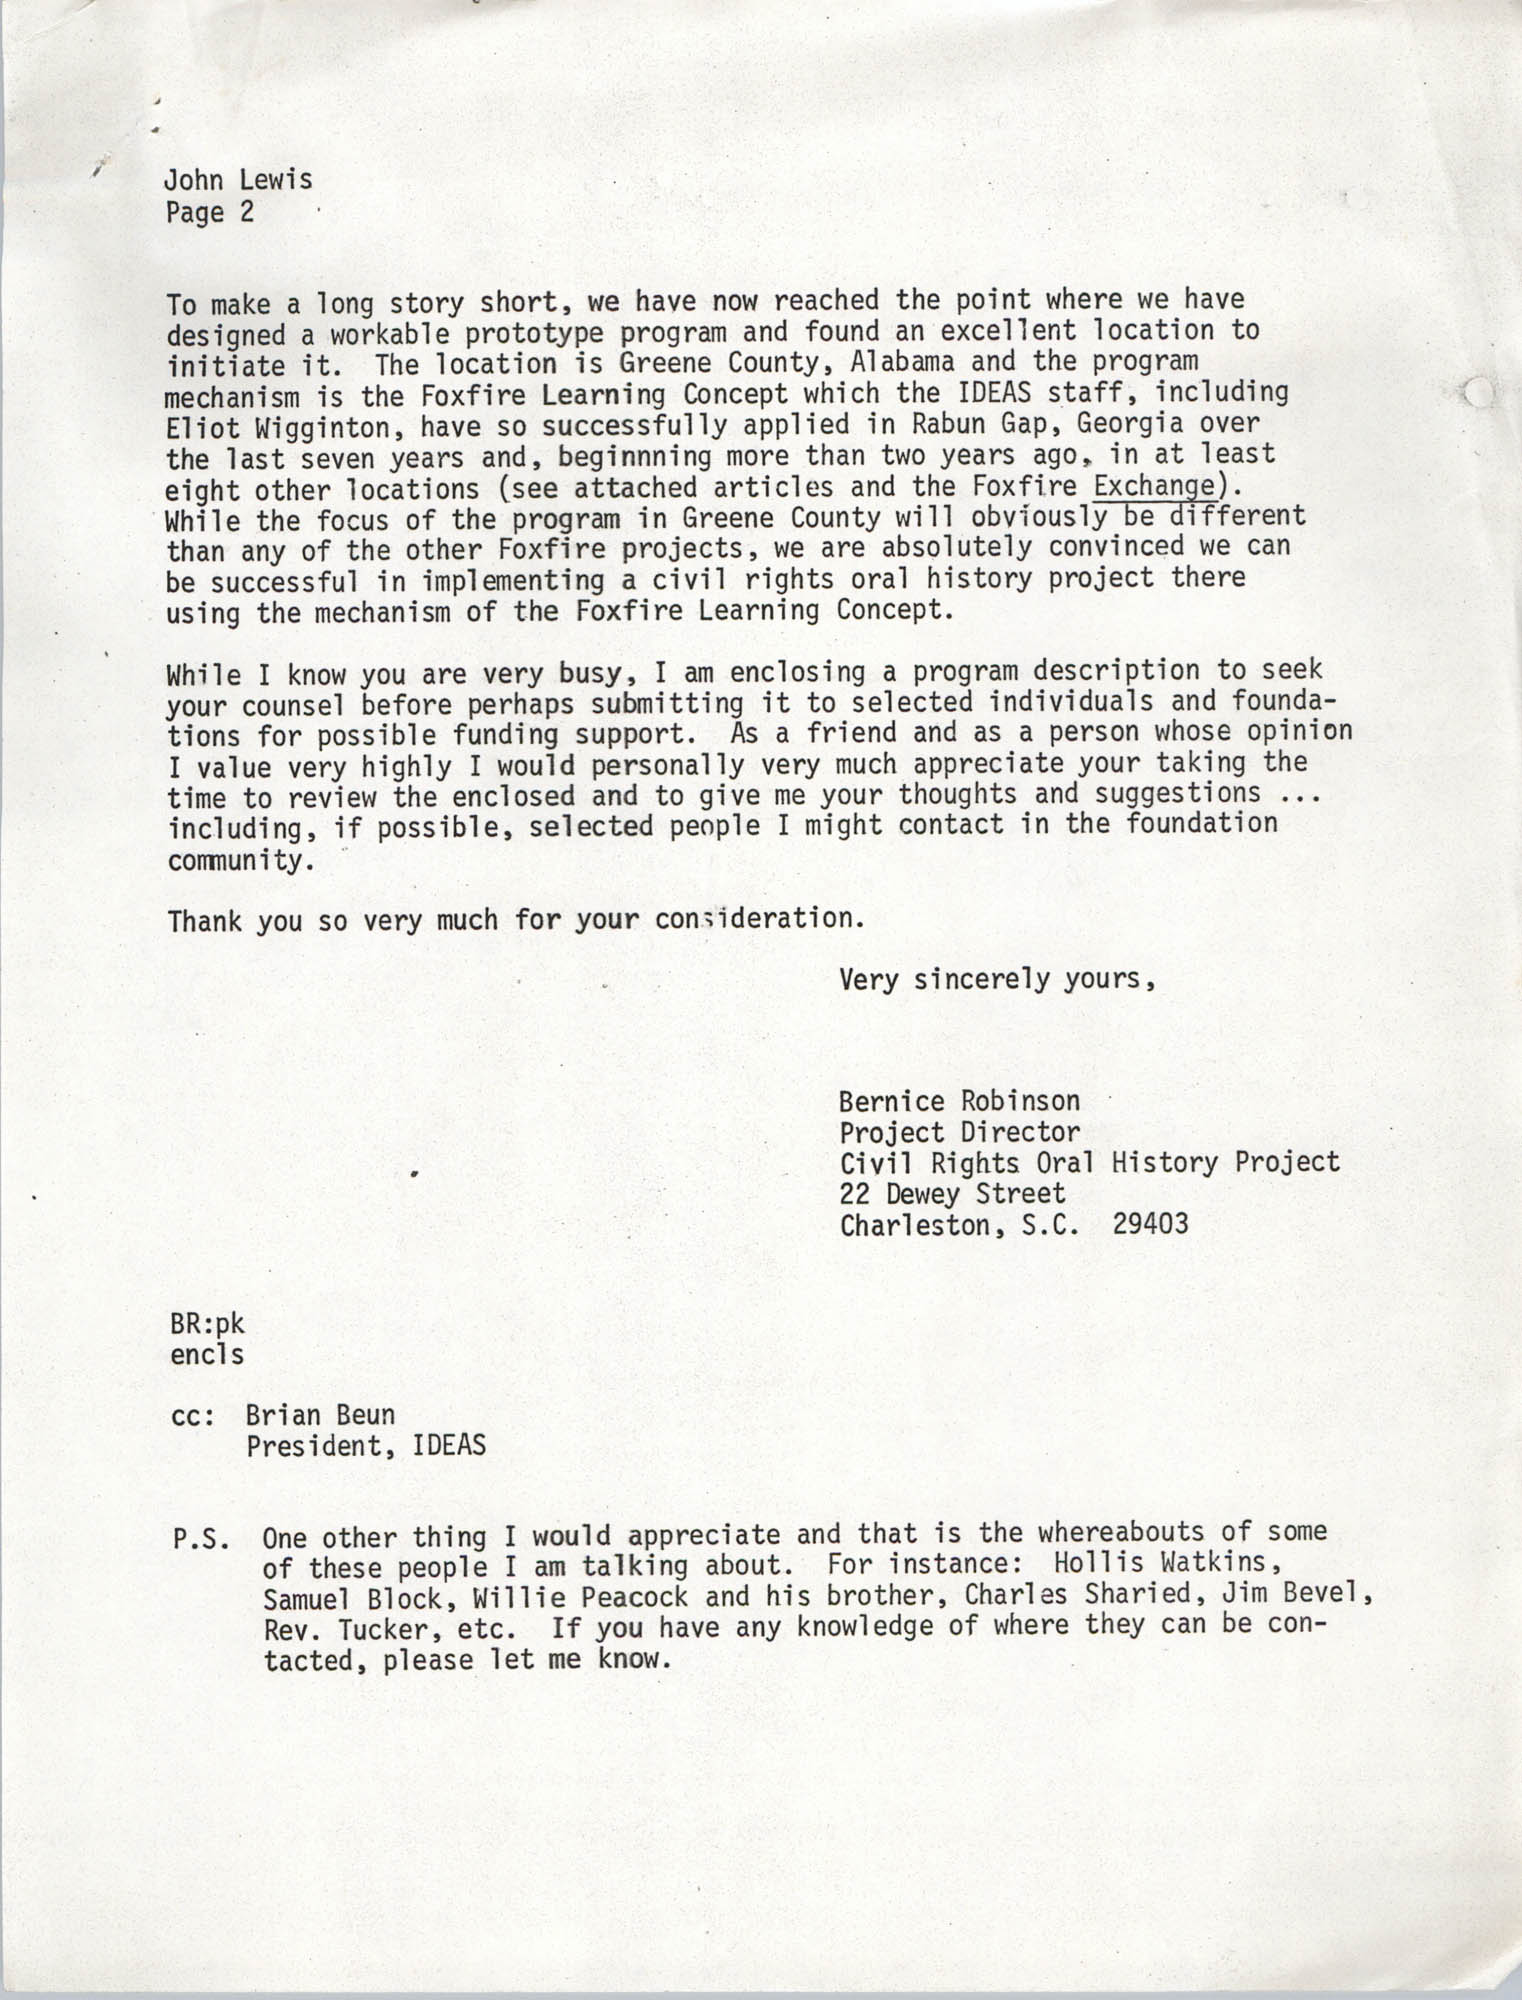 Letter from Bernice Robinson to John Lewis, May 8, 1973, Page 2